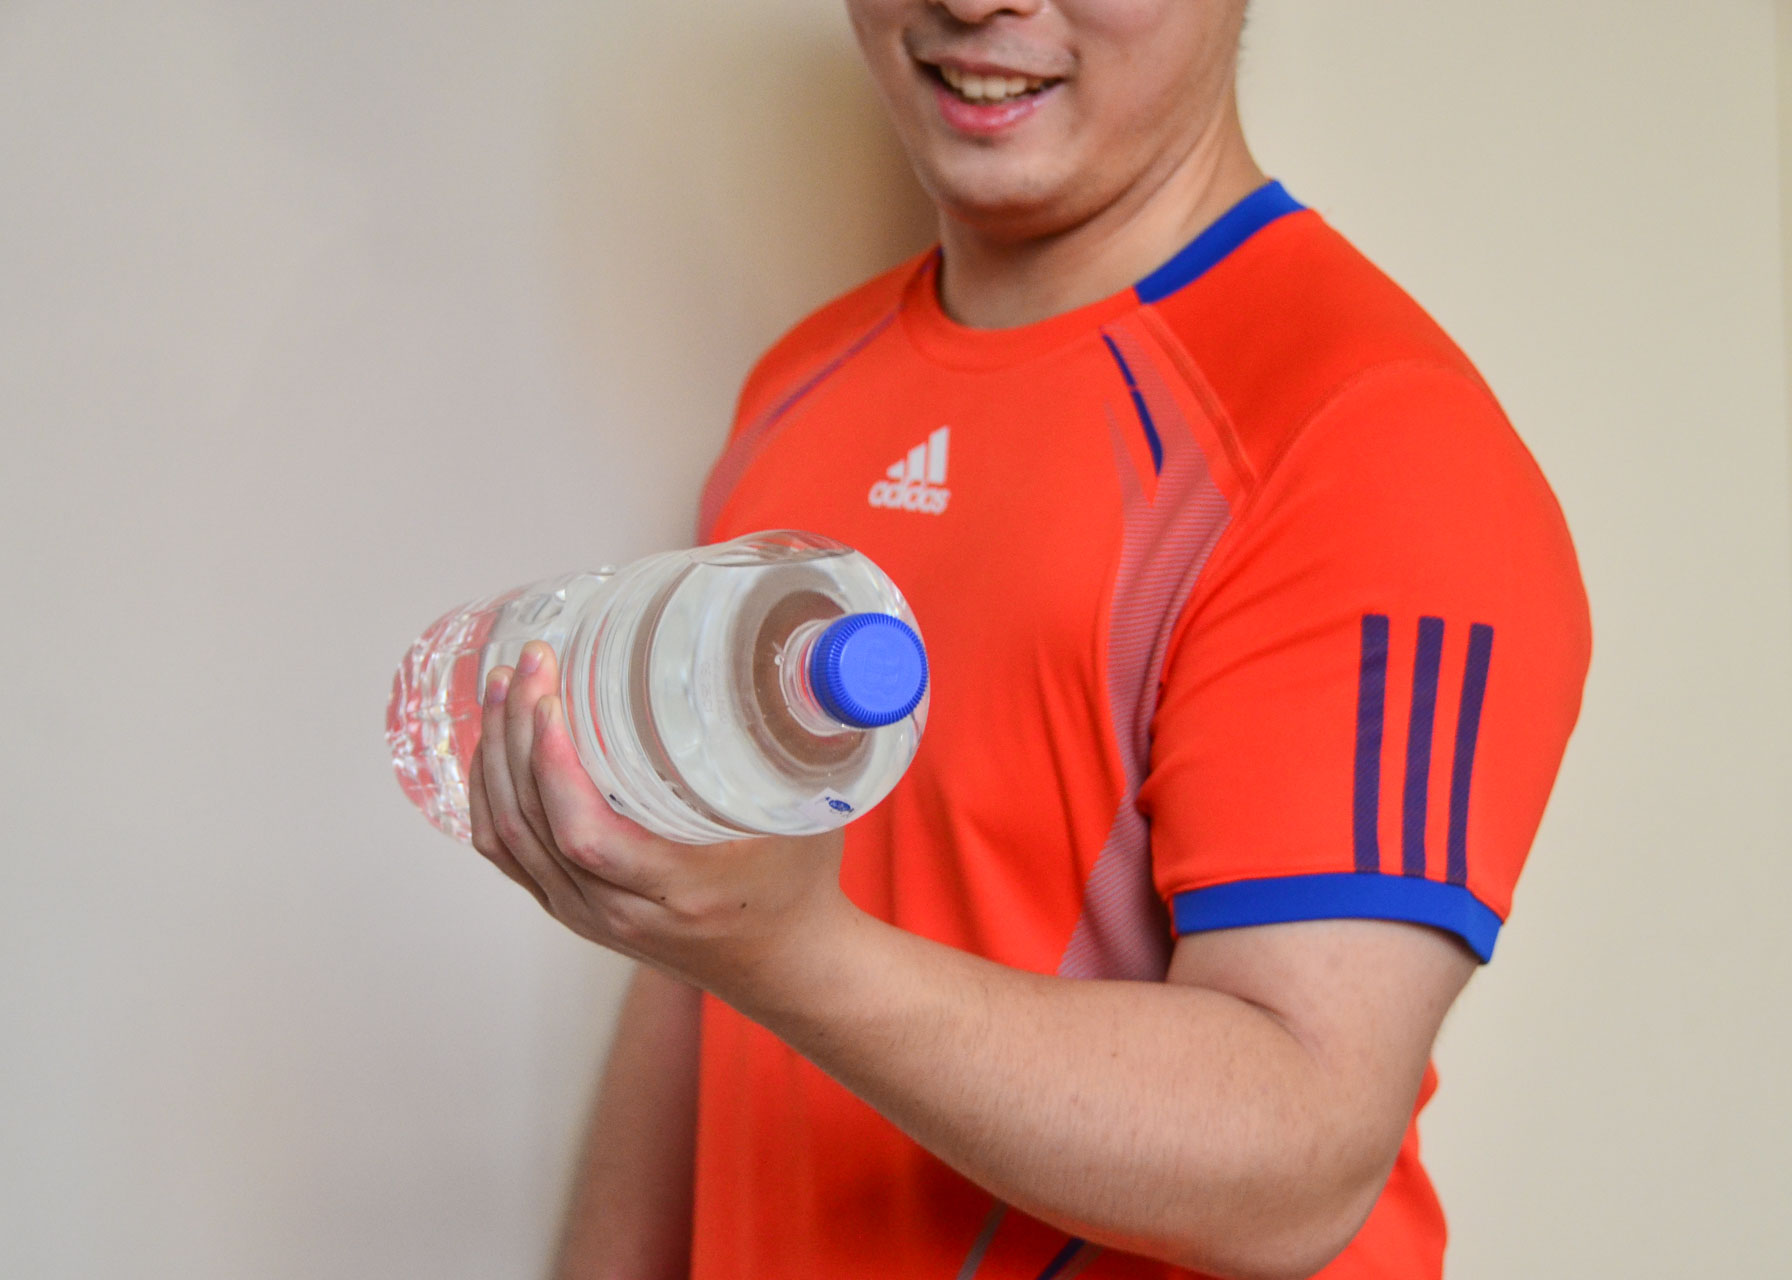 Household Items You Can Use as Fitness Equipment